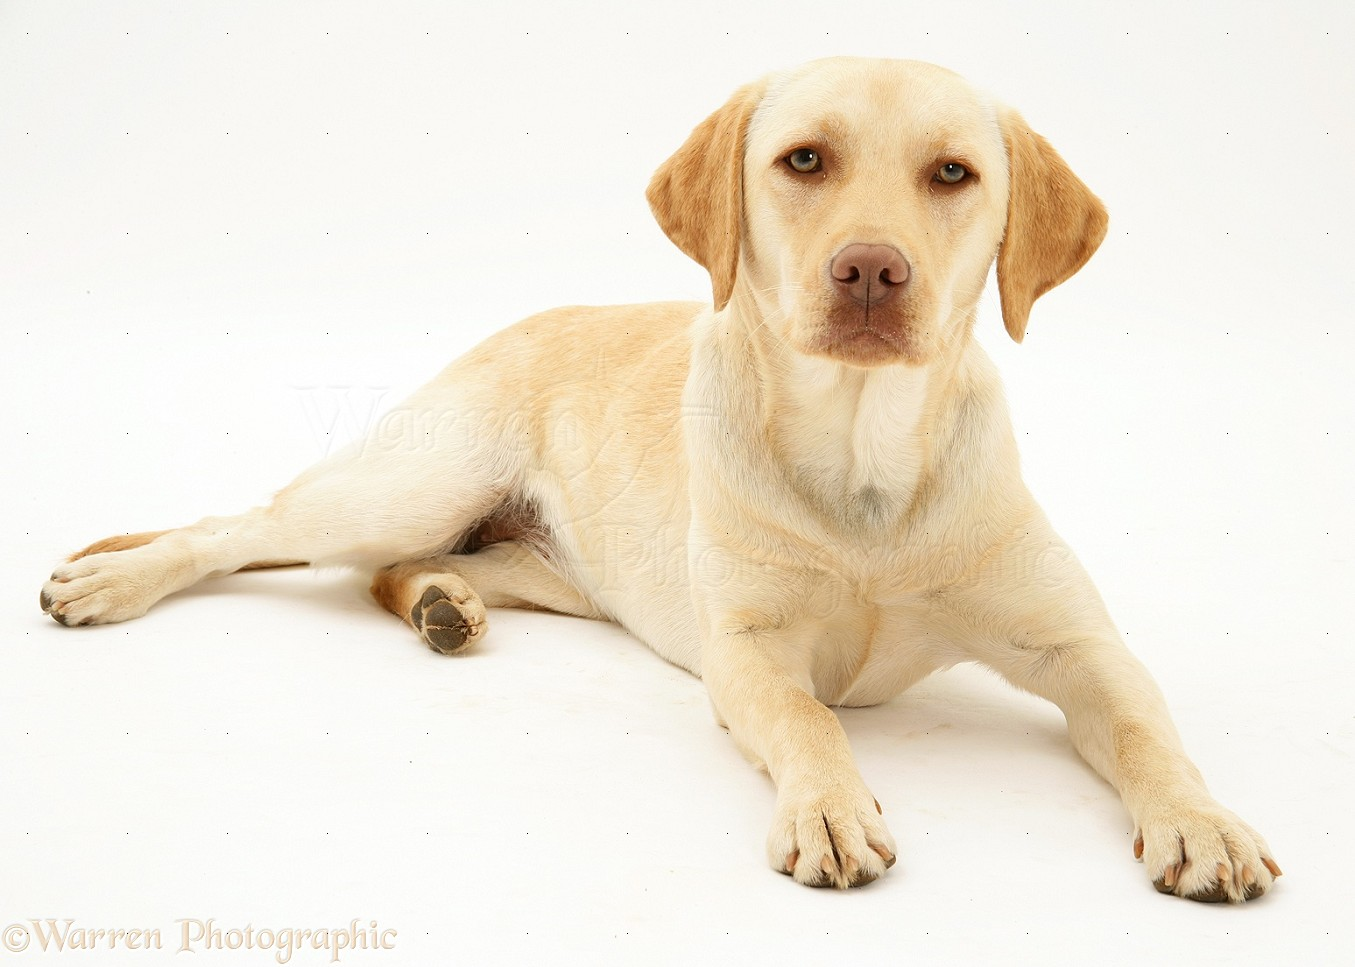 WP17071 Yellow Labrador Retriever Millie   1 year old White And Yellow Labrador Retriever